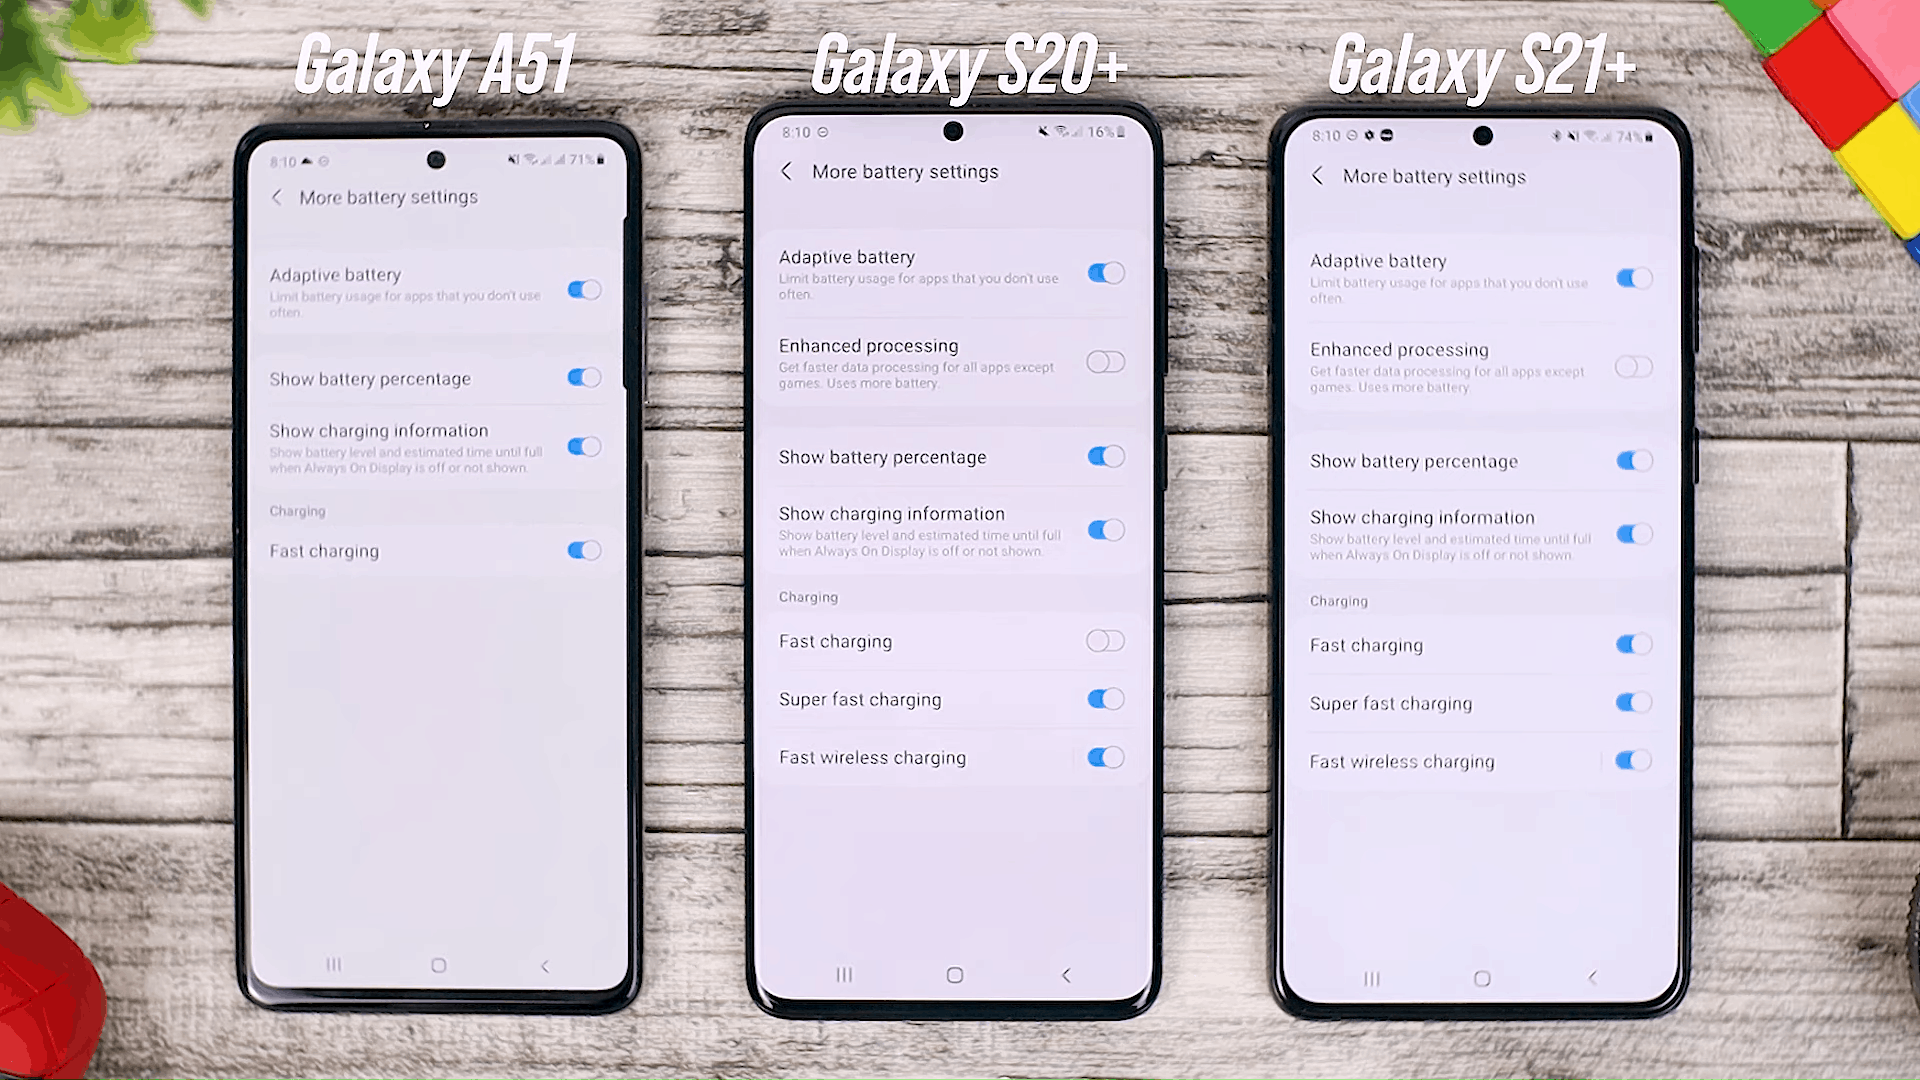 No High-Performance Feature - Fitur One UI 3.0 di Galaxy A51 dan Perbandingannya dengan Galaxy S20+ dan One UI 3.1 di Galaxy S21+